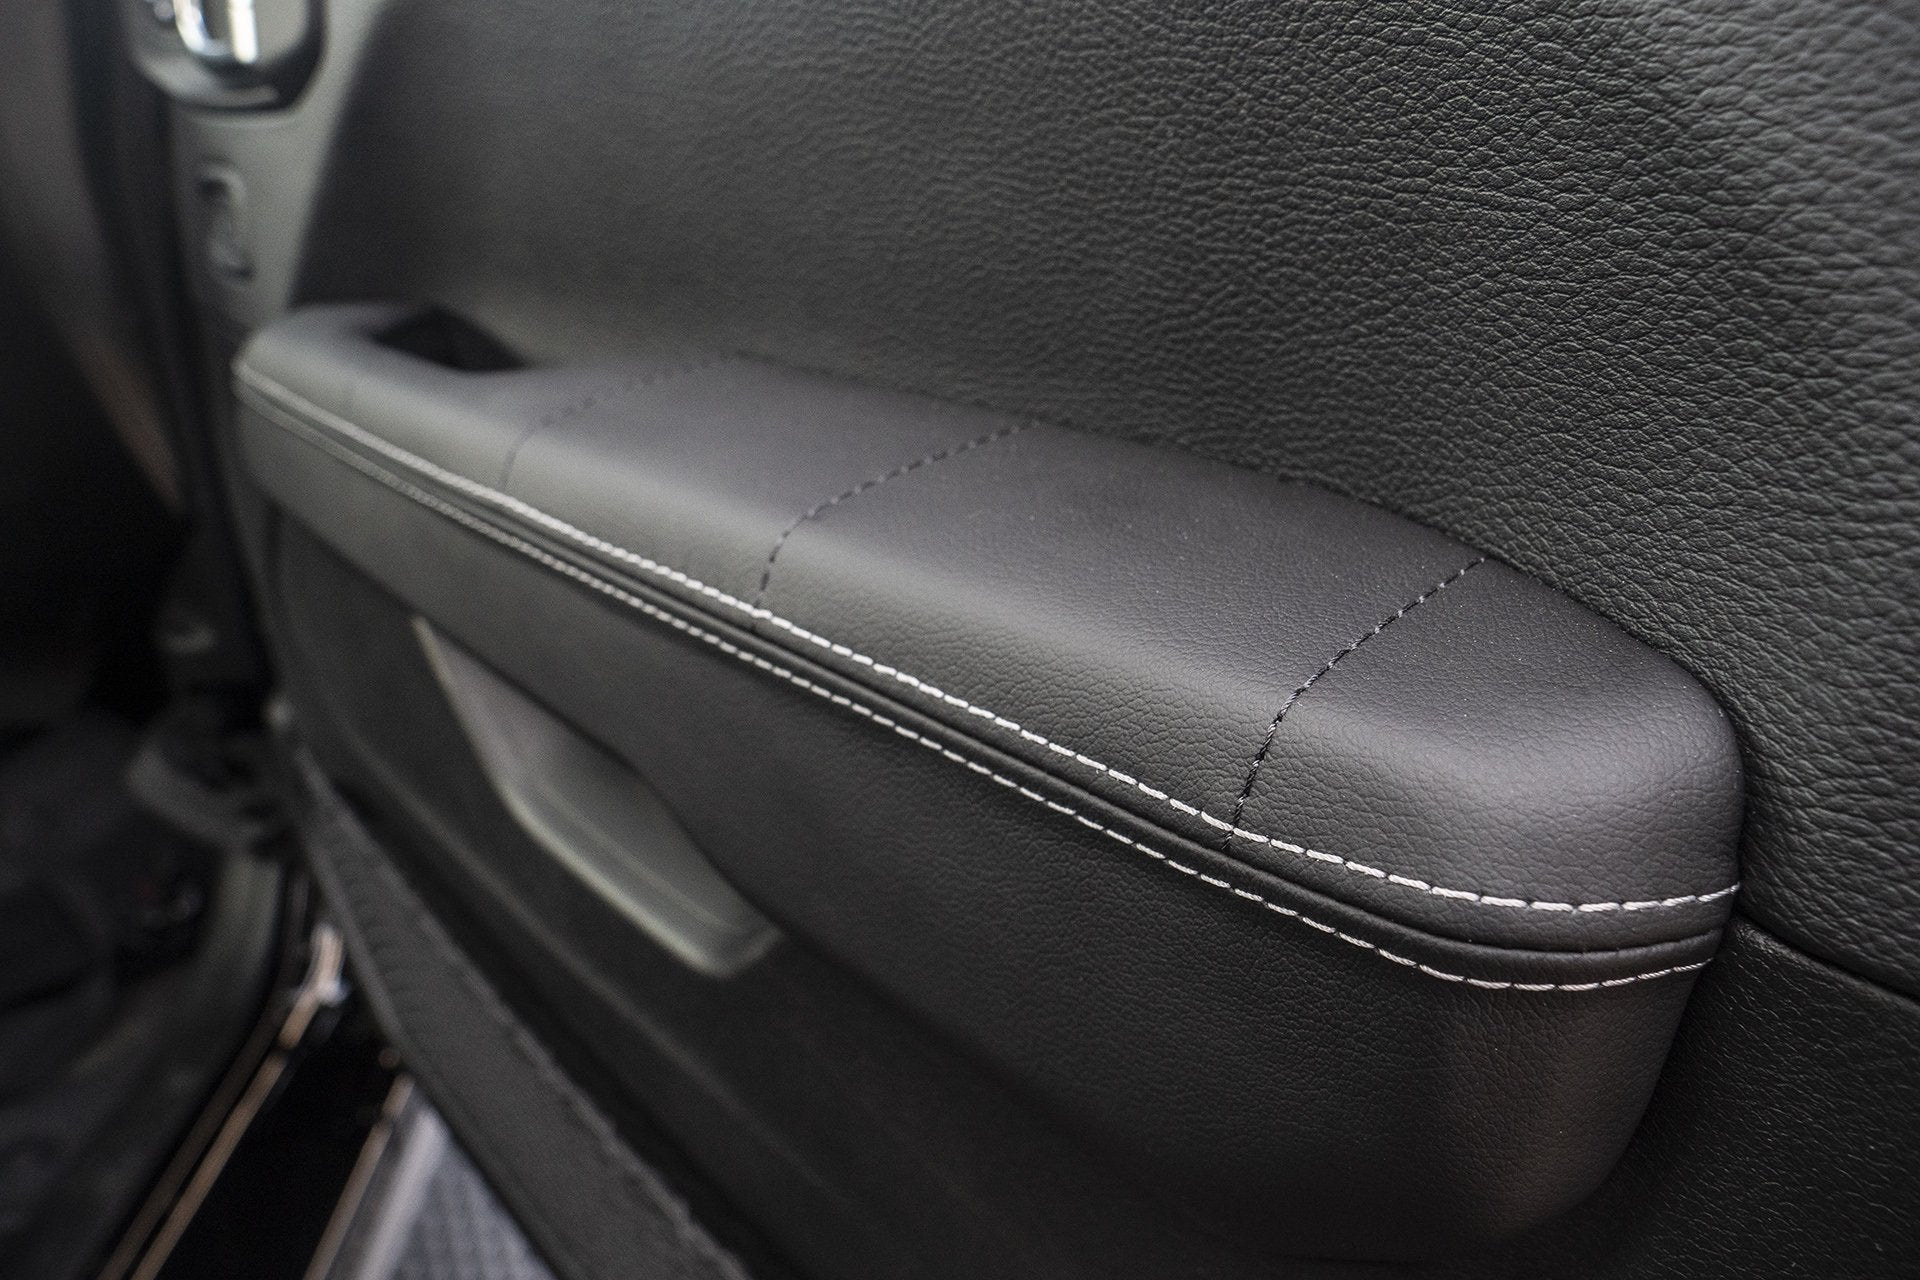 Jeep Wrangler JL (2018-Present) 4 Door Armrests - Project Kahn